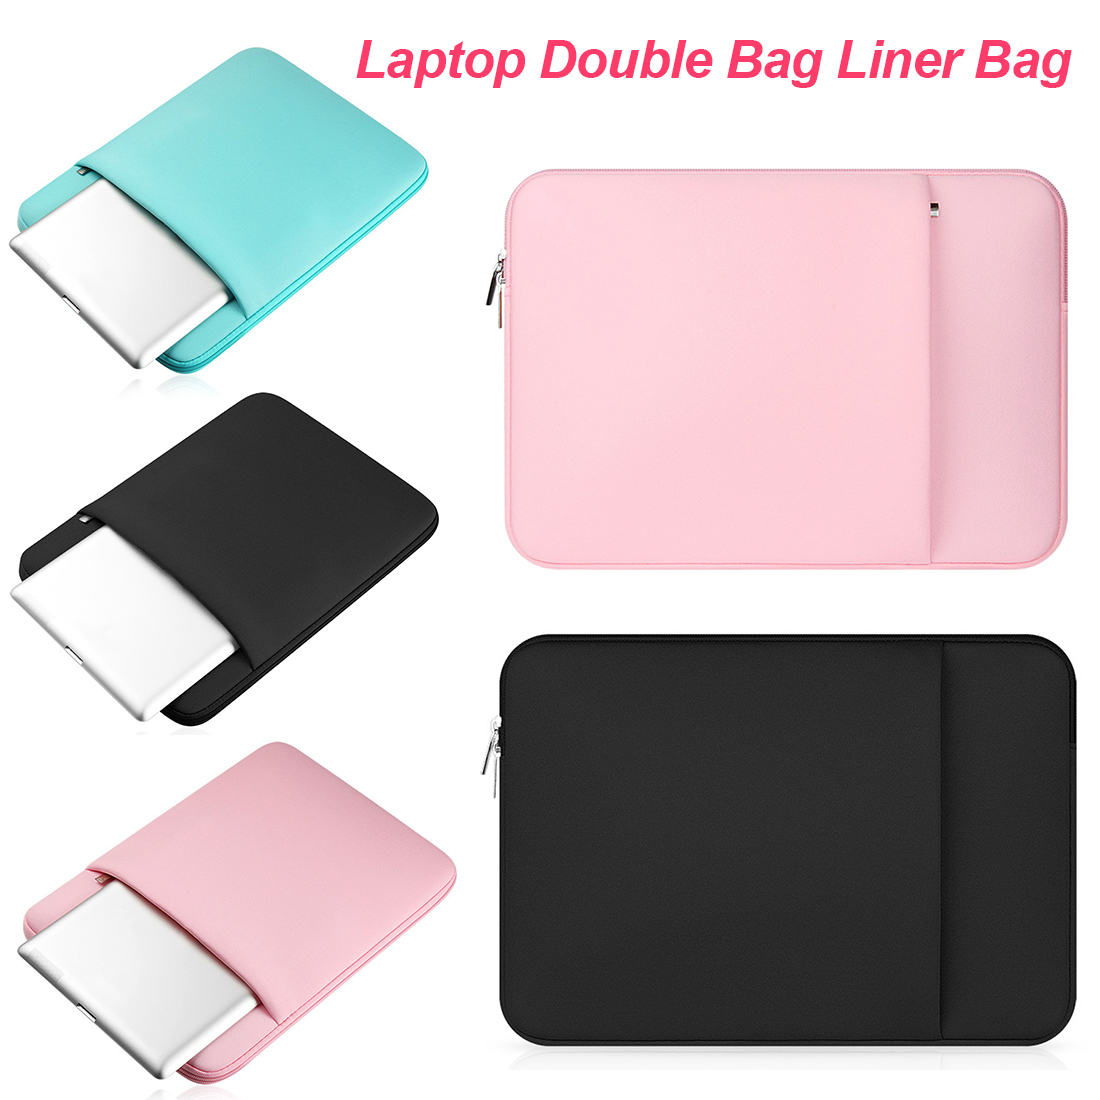 Portable Nylon Laptop Sleeve 14 15.6 Inch Notebook Bag 13.3 For MacBook Air Pro 13 Case Laptop Bag 11 13 15 Inch Protective Case